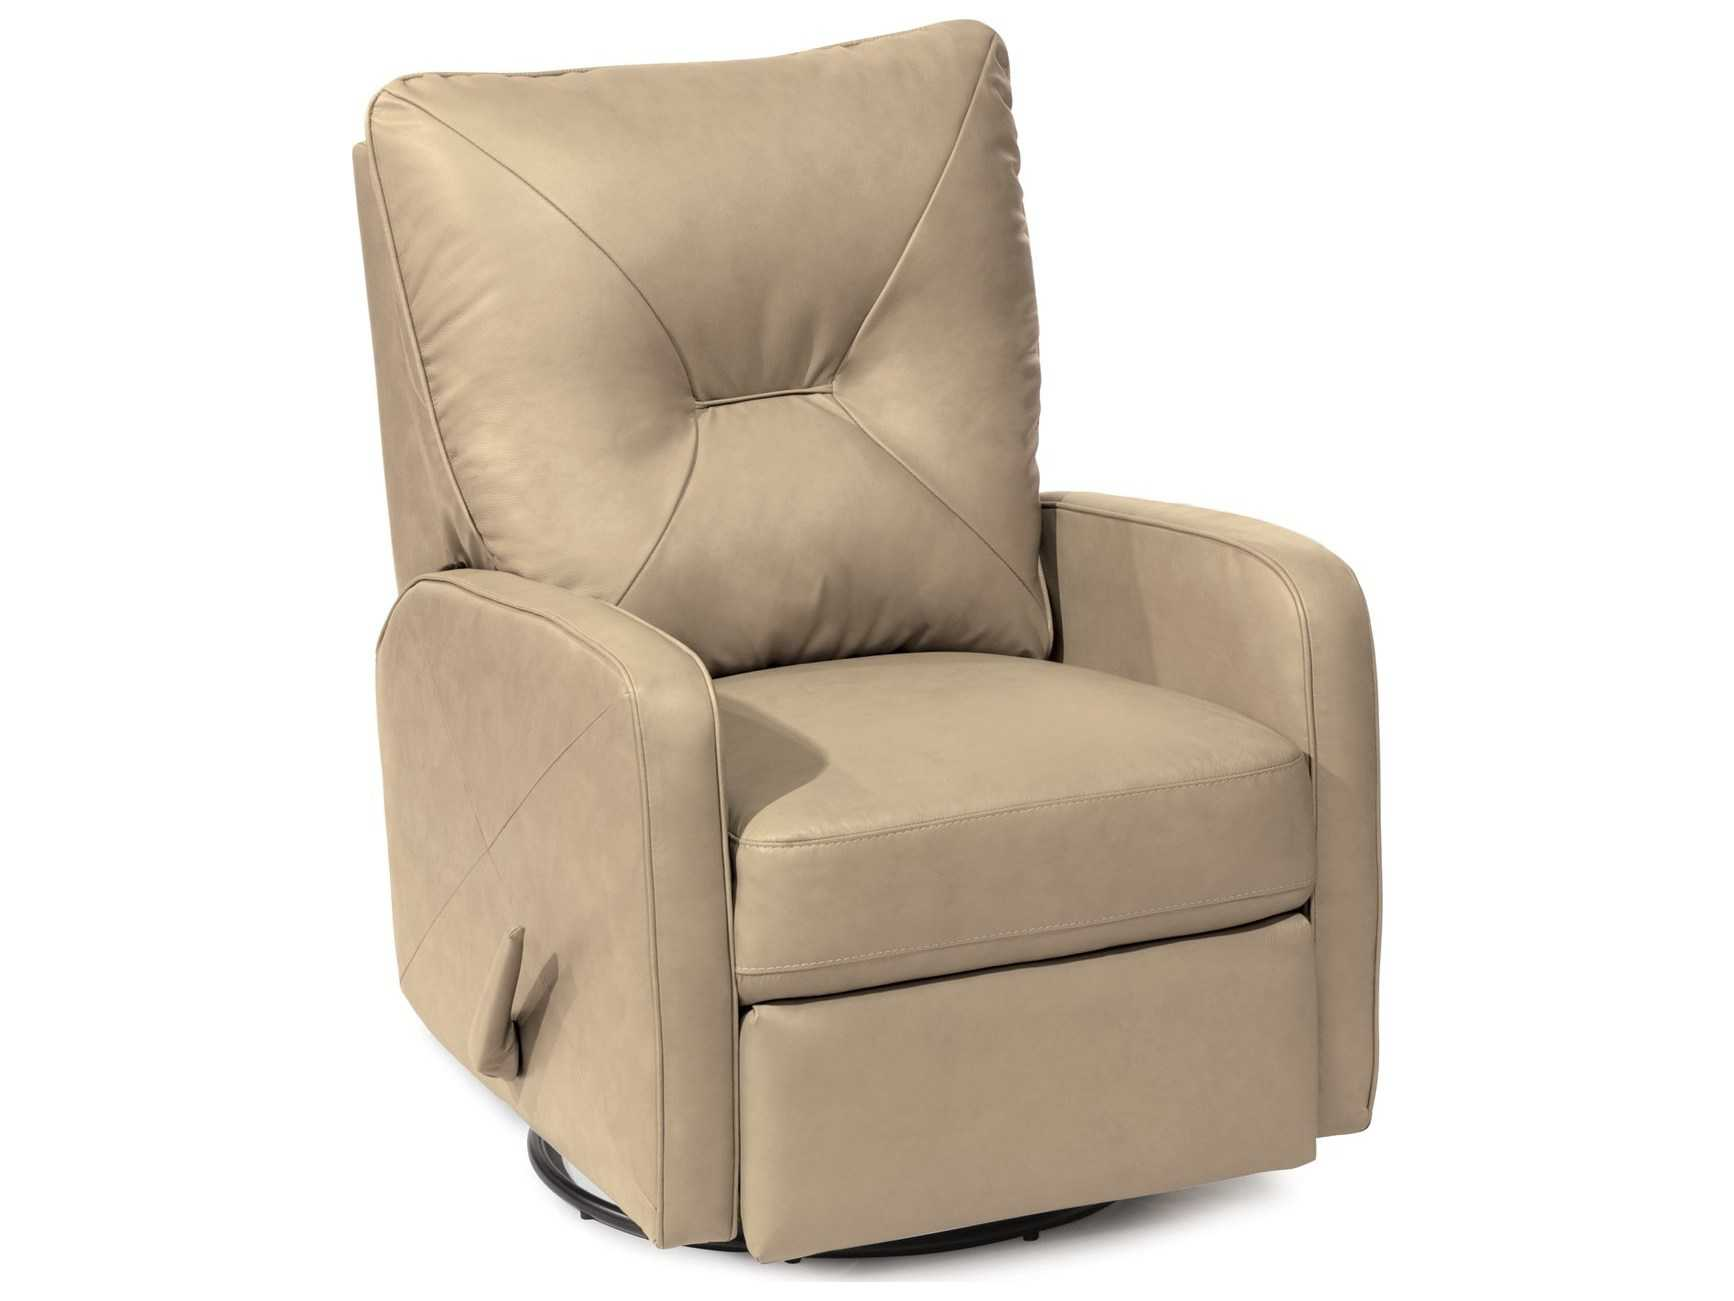 Swivel Rocker Recliner Chair Palliser Theo Swivel Rocker Recliner Chair